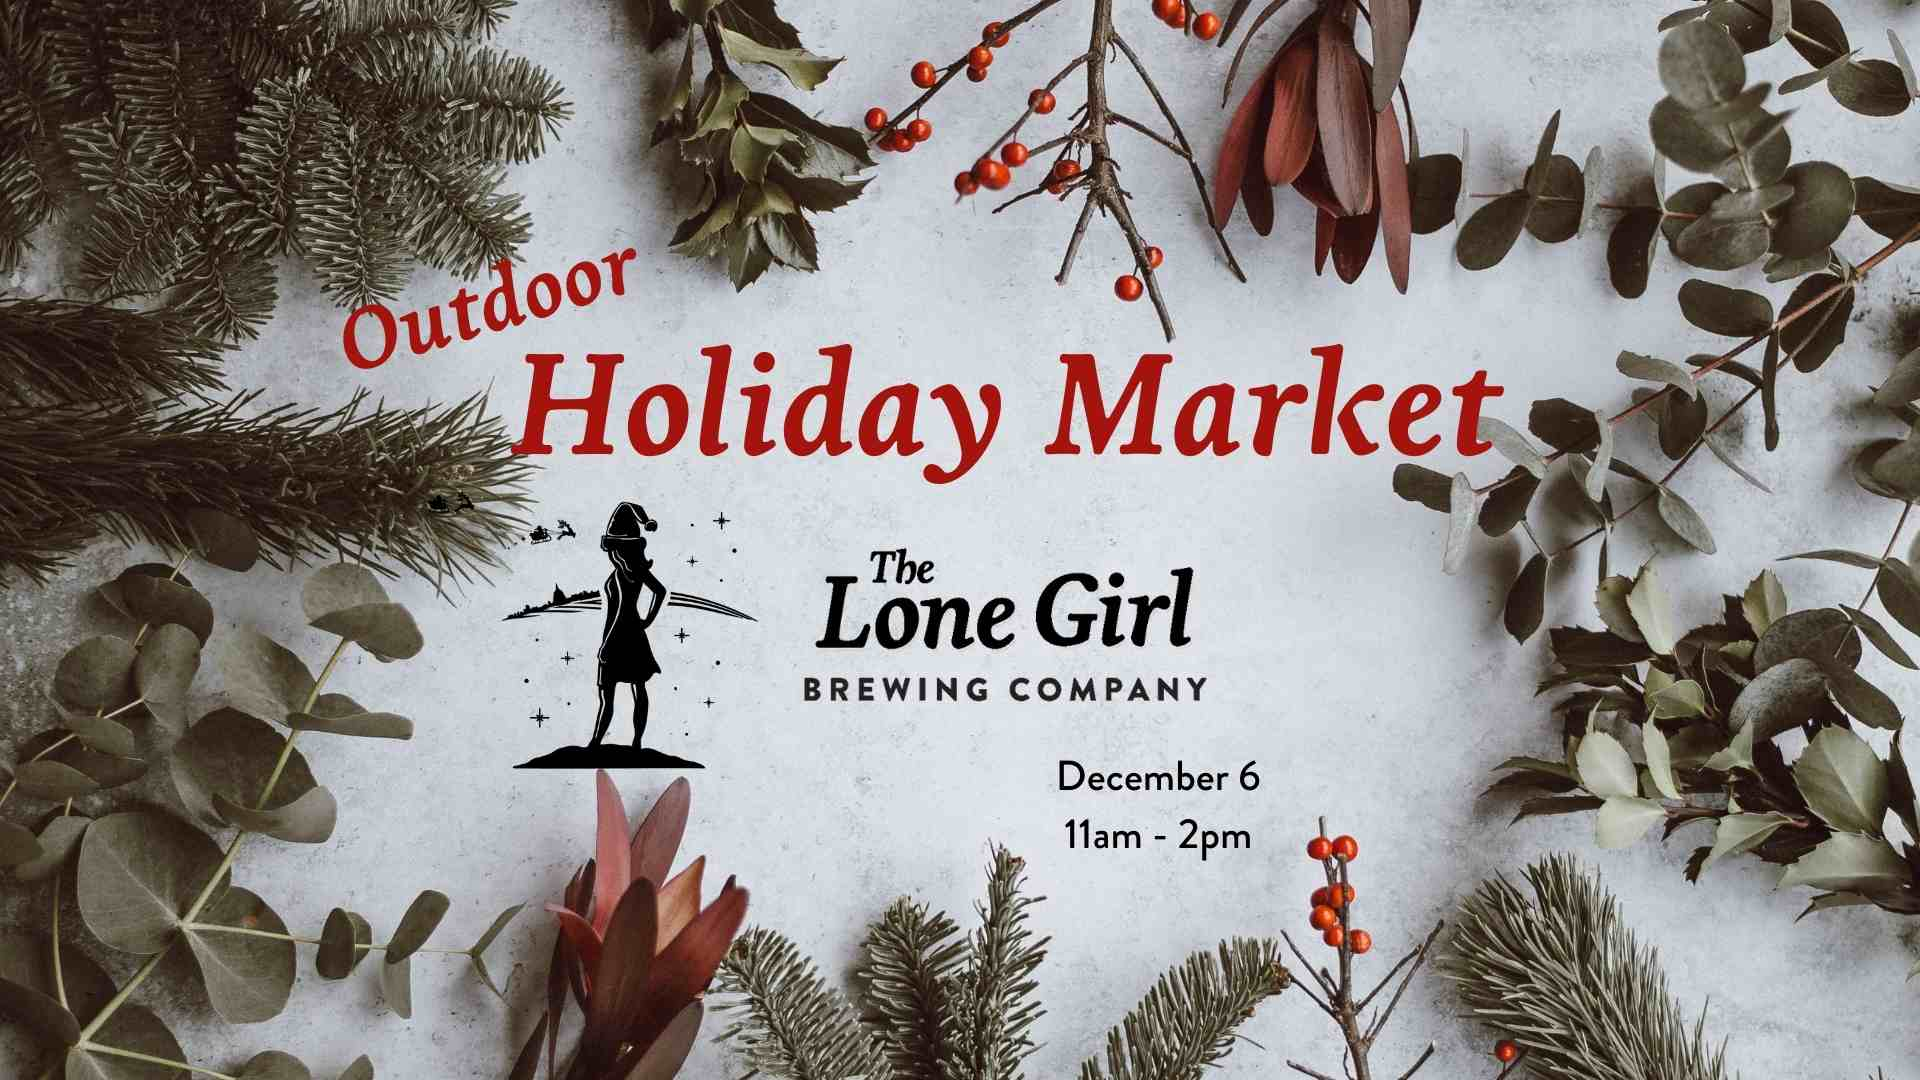 Holiday Market event